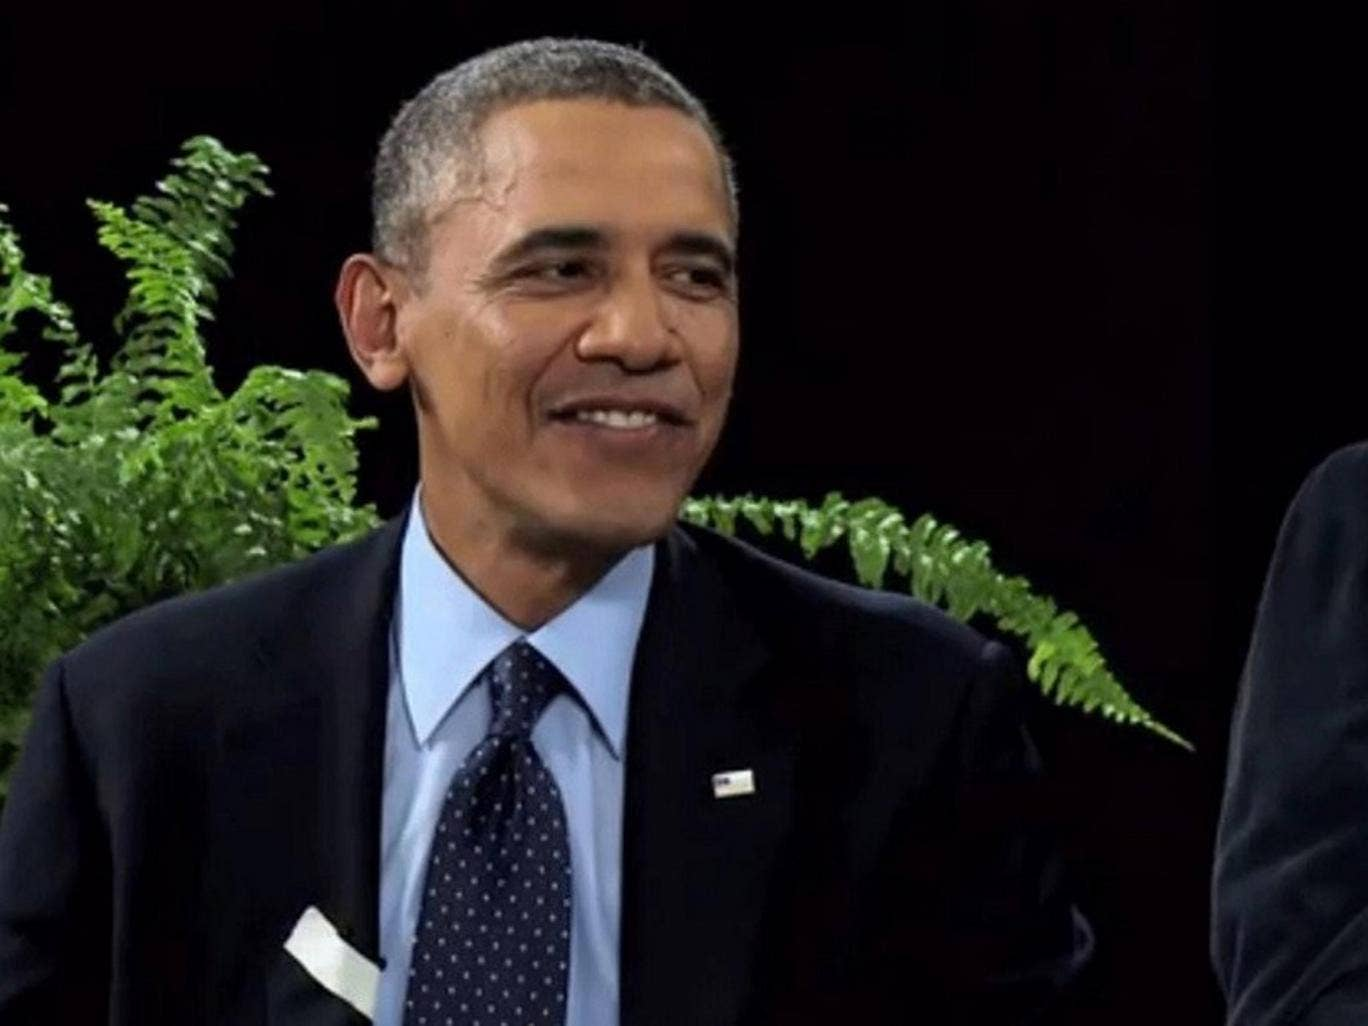 The grin reaper: Barack Obama on 'Between Two Ferns'